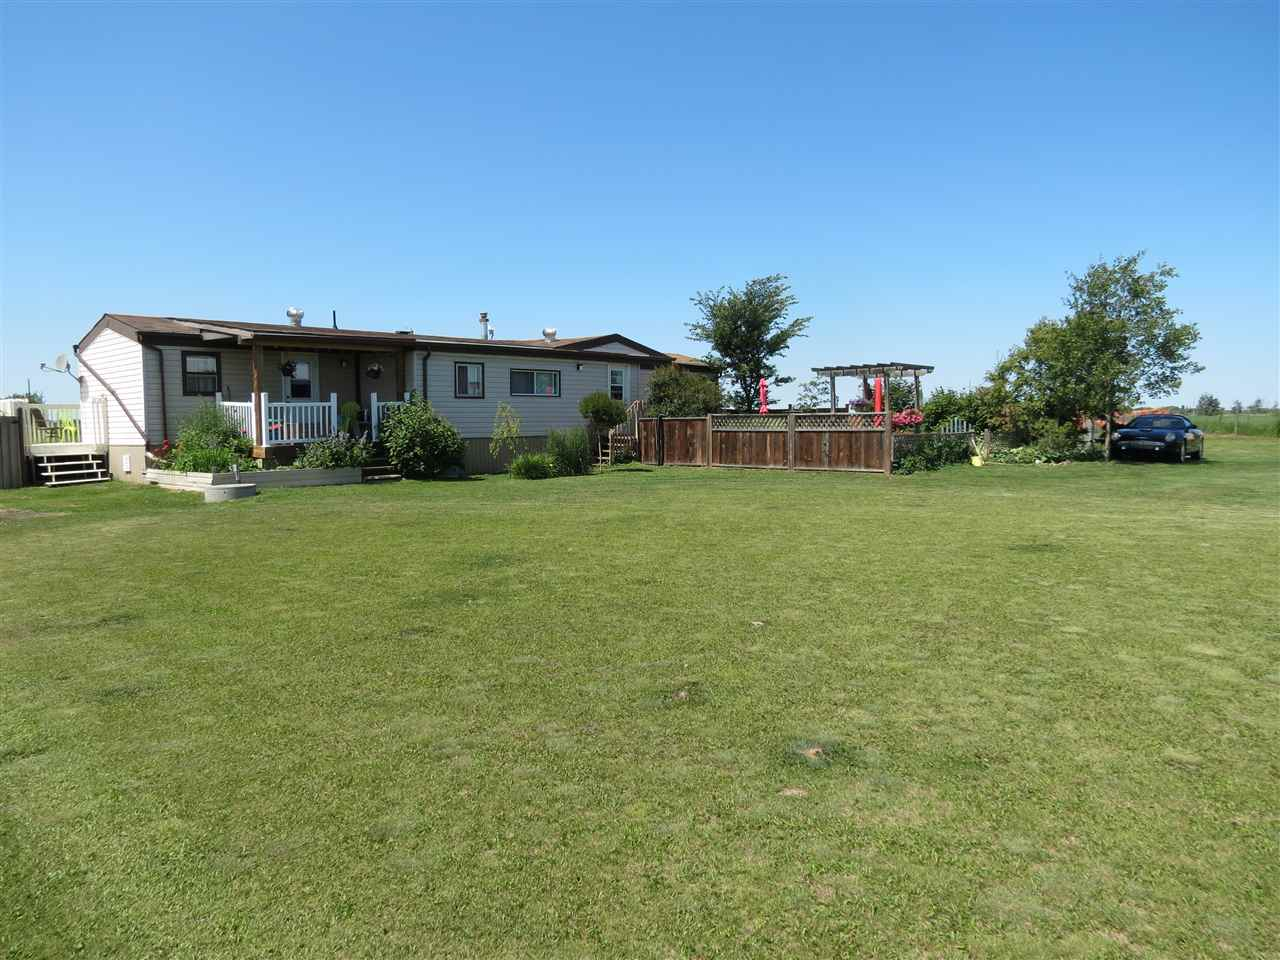 Photo 3: 55231 RR 261: Rural Sturgeon County Manufactured Home for sale : MLS® # E4051426